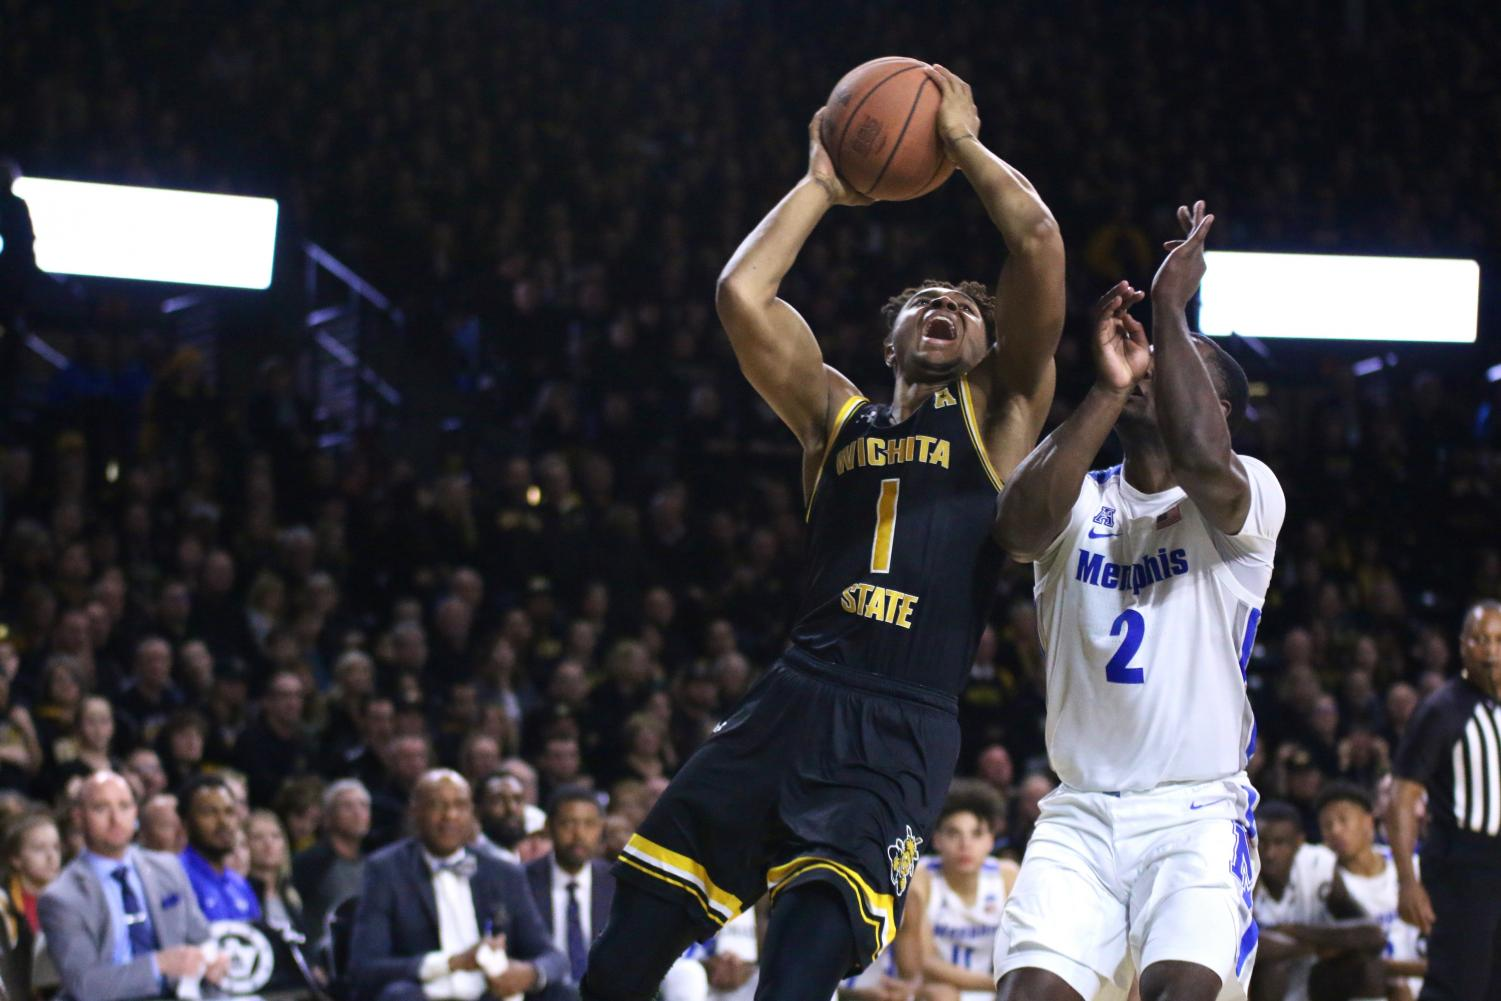 Wichita State freshman Tyson Etienne goes up for a layup during the game against Memphis on Saturday inside Charles Koch Arena.